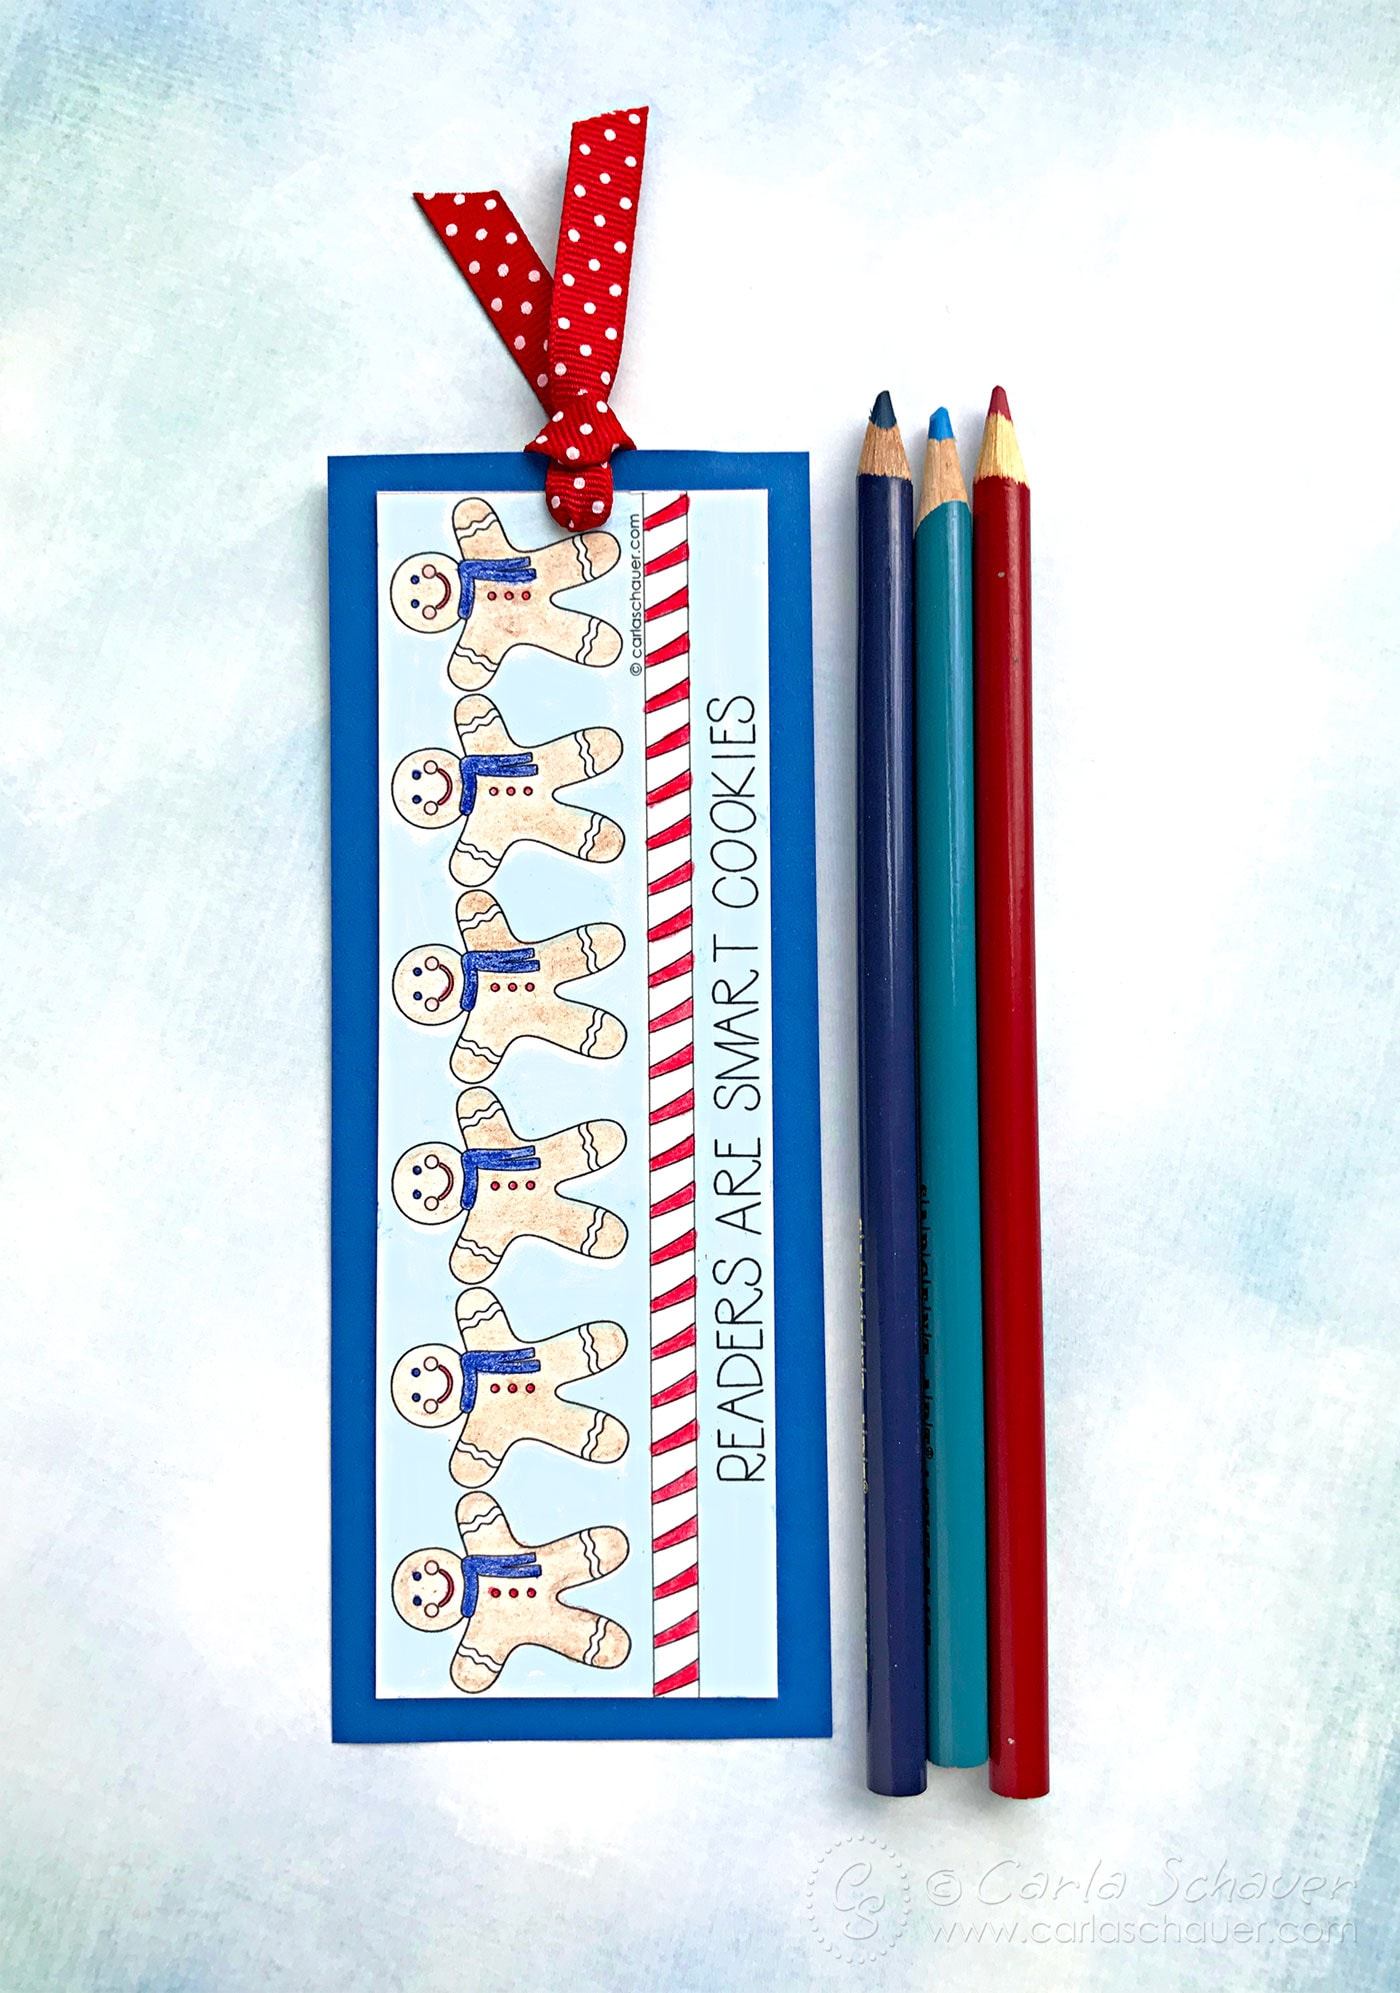 Printable winter bookmark after coloring, next to colored pencils on blue background.